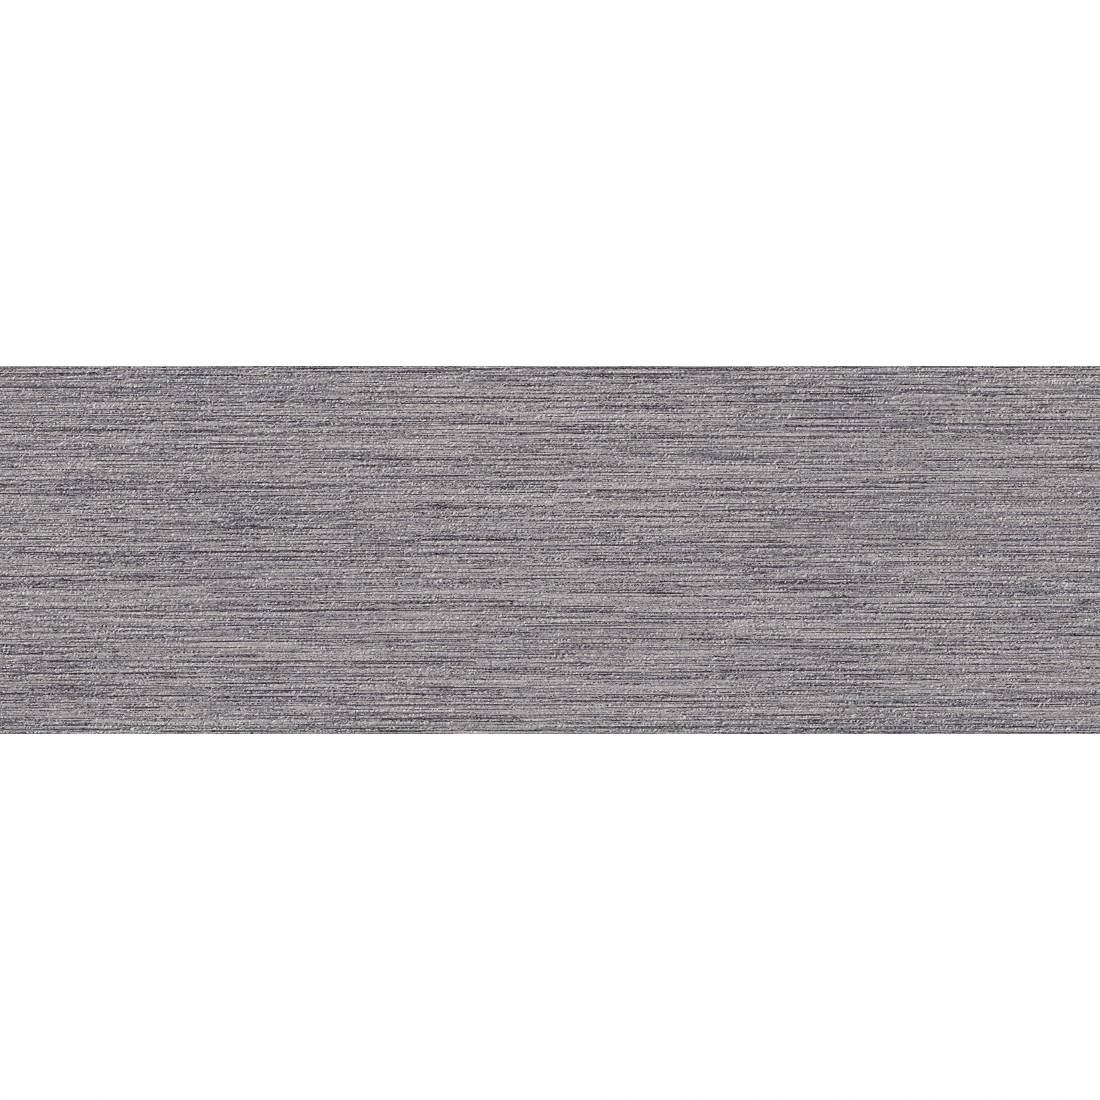 Atlas 25x75 Gris Gloss 1